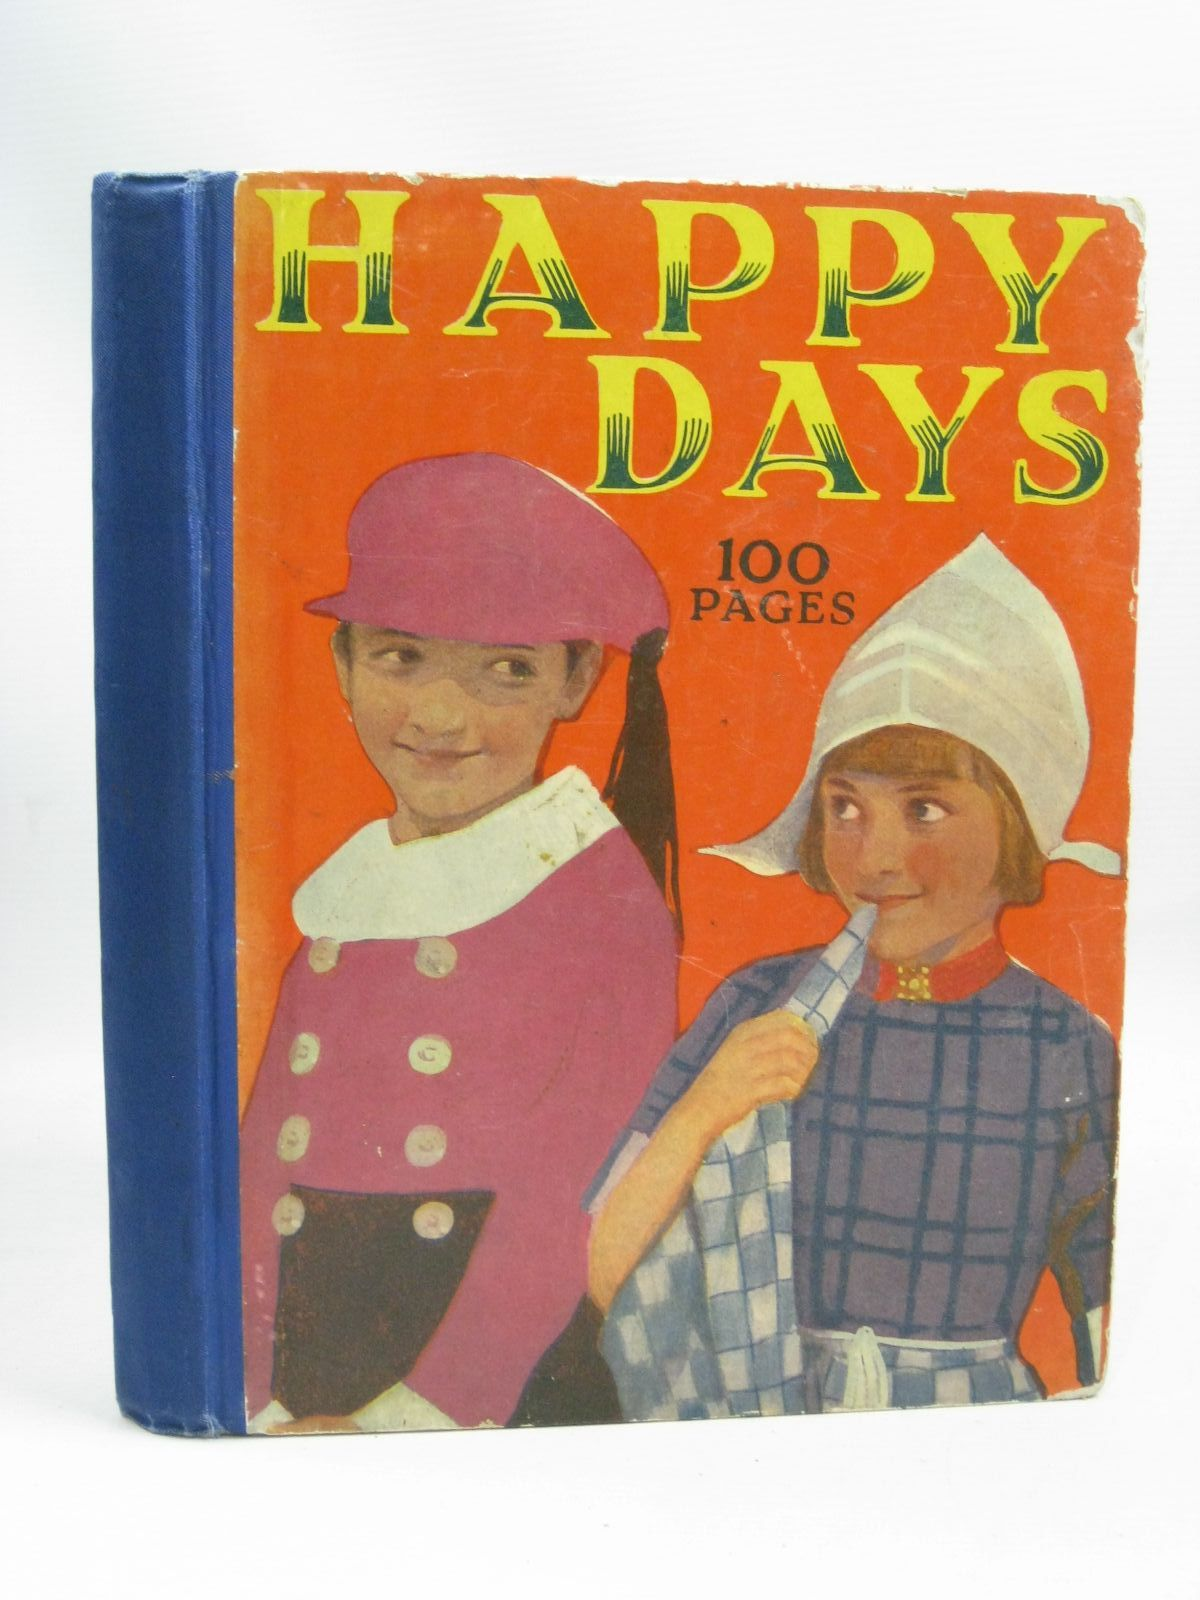 Photo of HAPPY DAYS written by Methley, Violet M.<br />Rutley, Cecily M.<br />Oldmeadow, Katharine<br />Leonard, Bertha<br />Tynan, Katharine<br />et al, illustrated by Beaman, S.G. Hulme<br />Cowham, Hilda<br />Anderson, Anne<br />Lambert, H.G.C. Marsh<br />et al., published by The Children's Press (STOCK CODE: 1505845)  for sale by Stella & Rose's Books